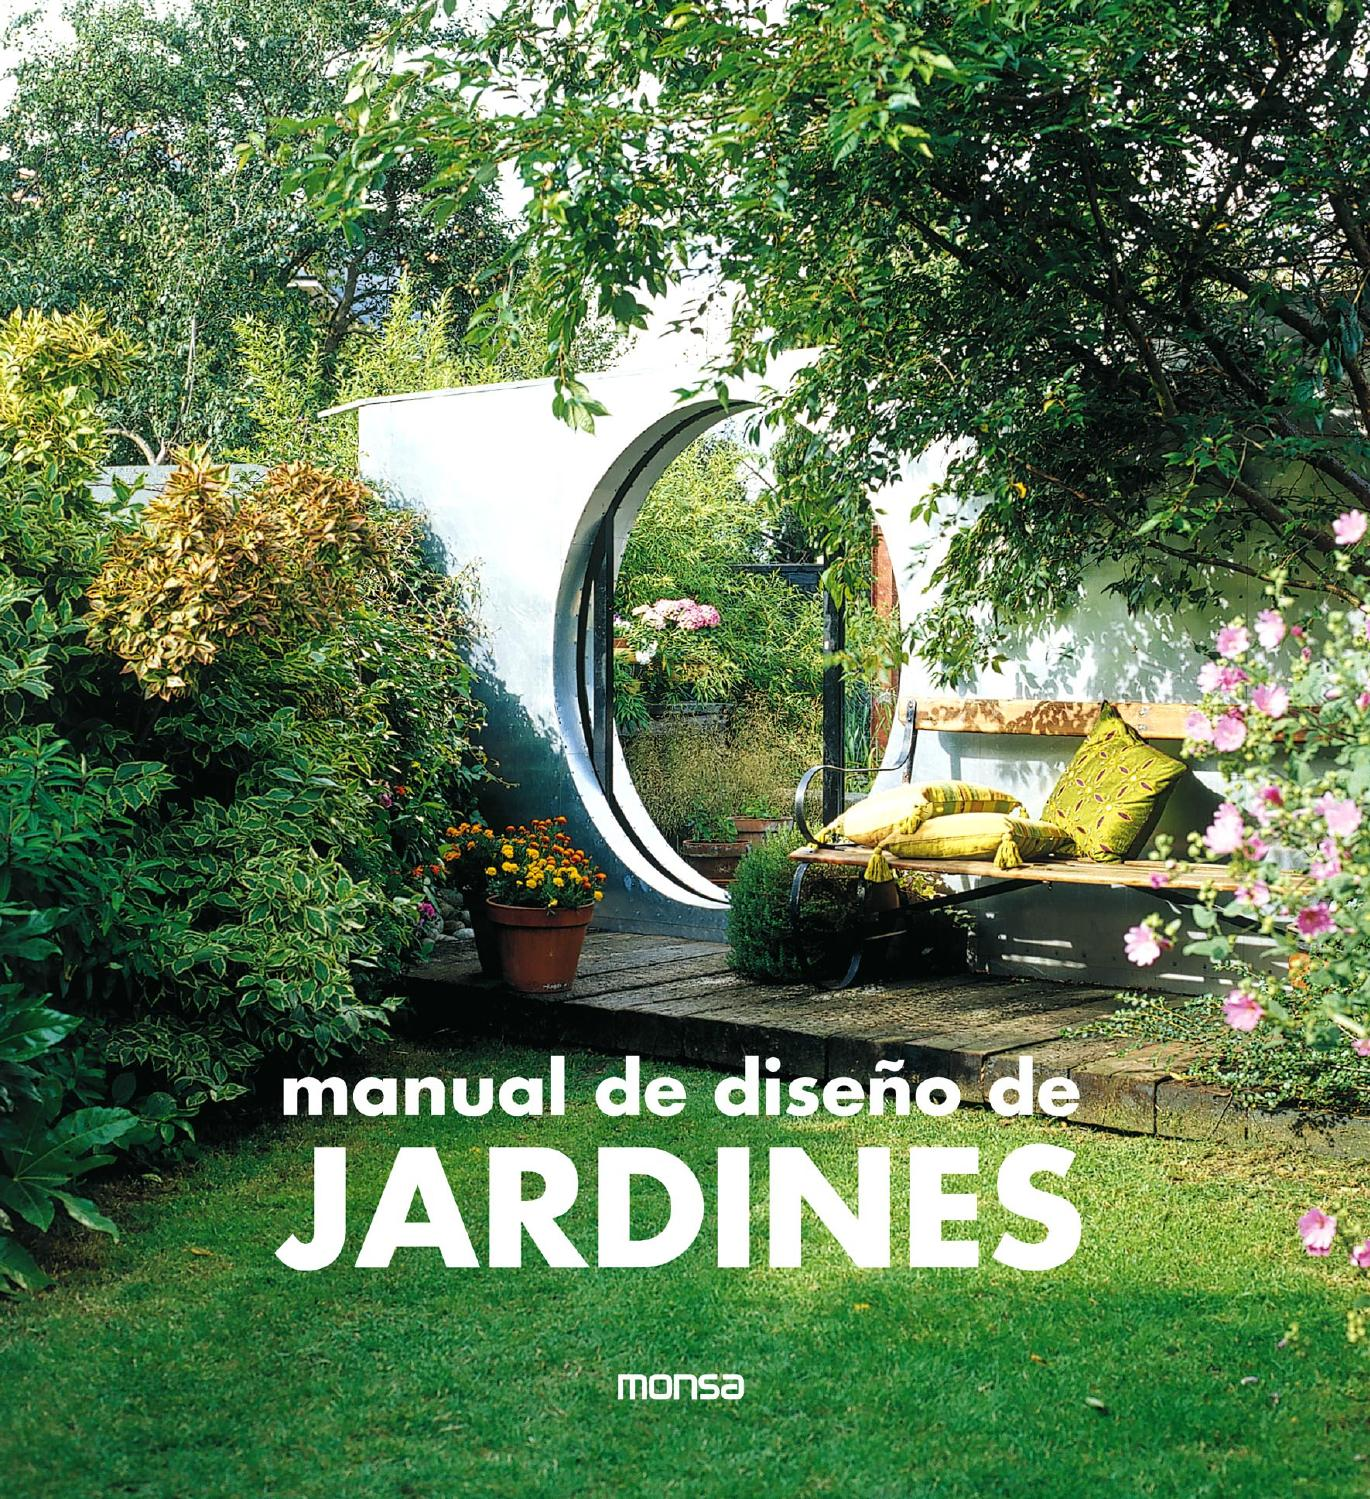 Manual de dise o de jardines by monsa publications issuu for Diseno de jardines